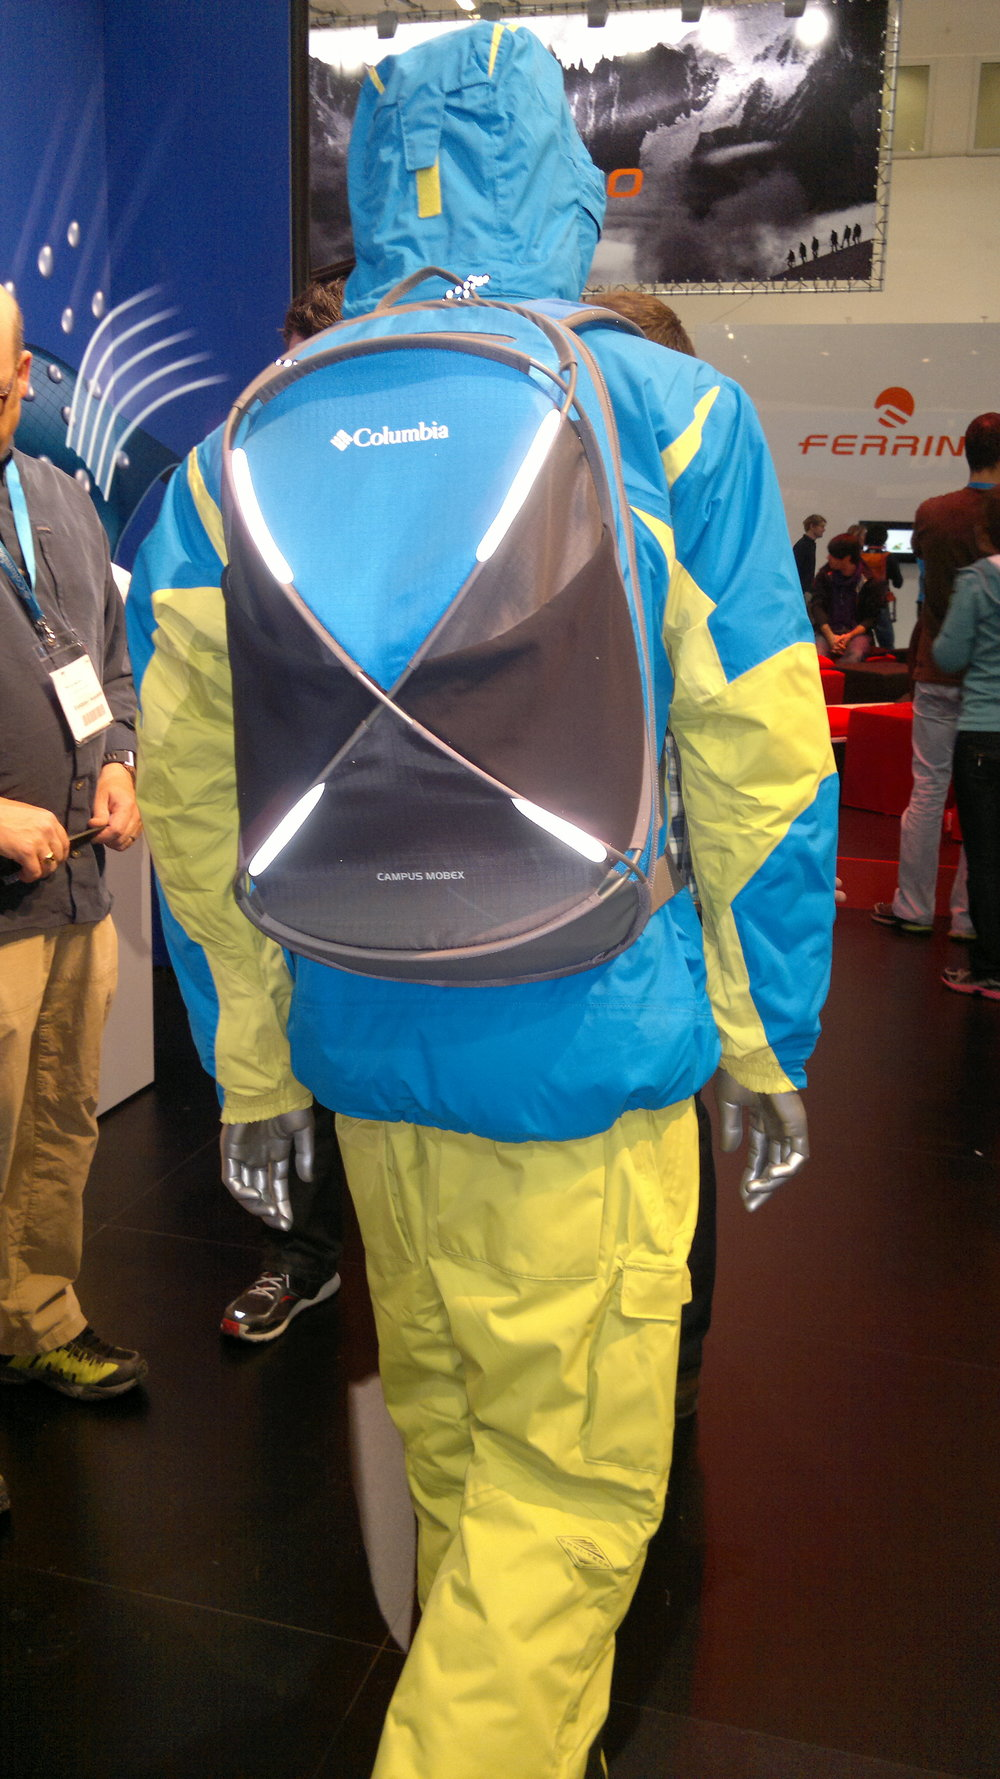 Tent-esque backpacks from Columbia and bright colours everywhere.